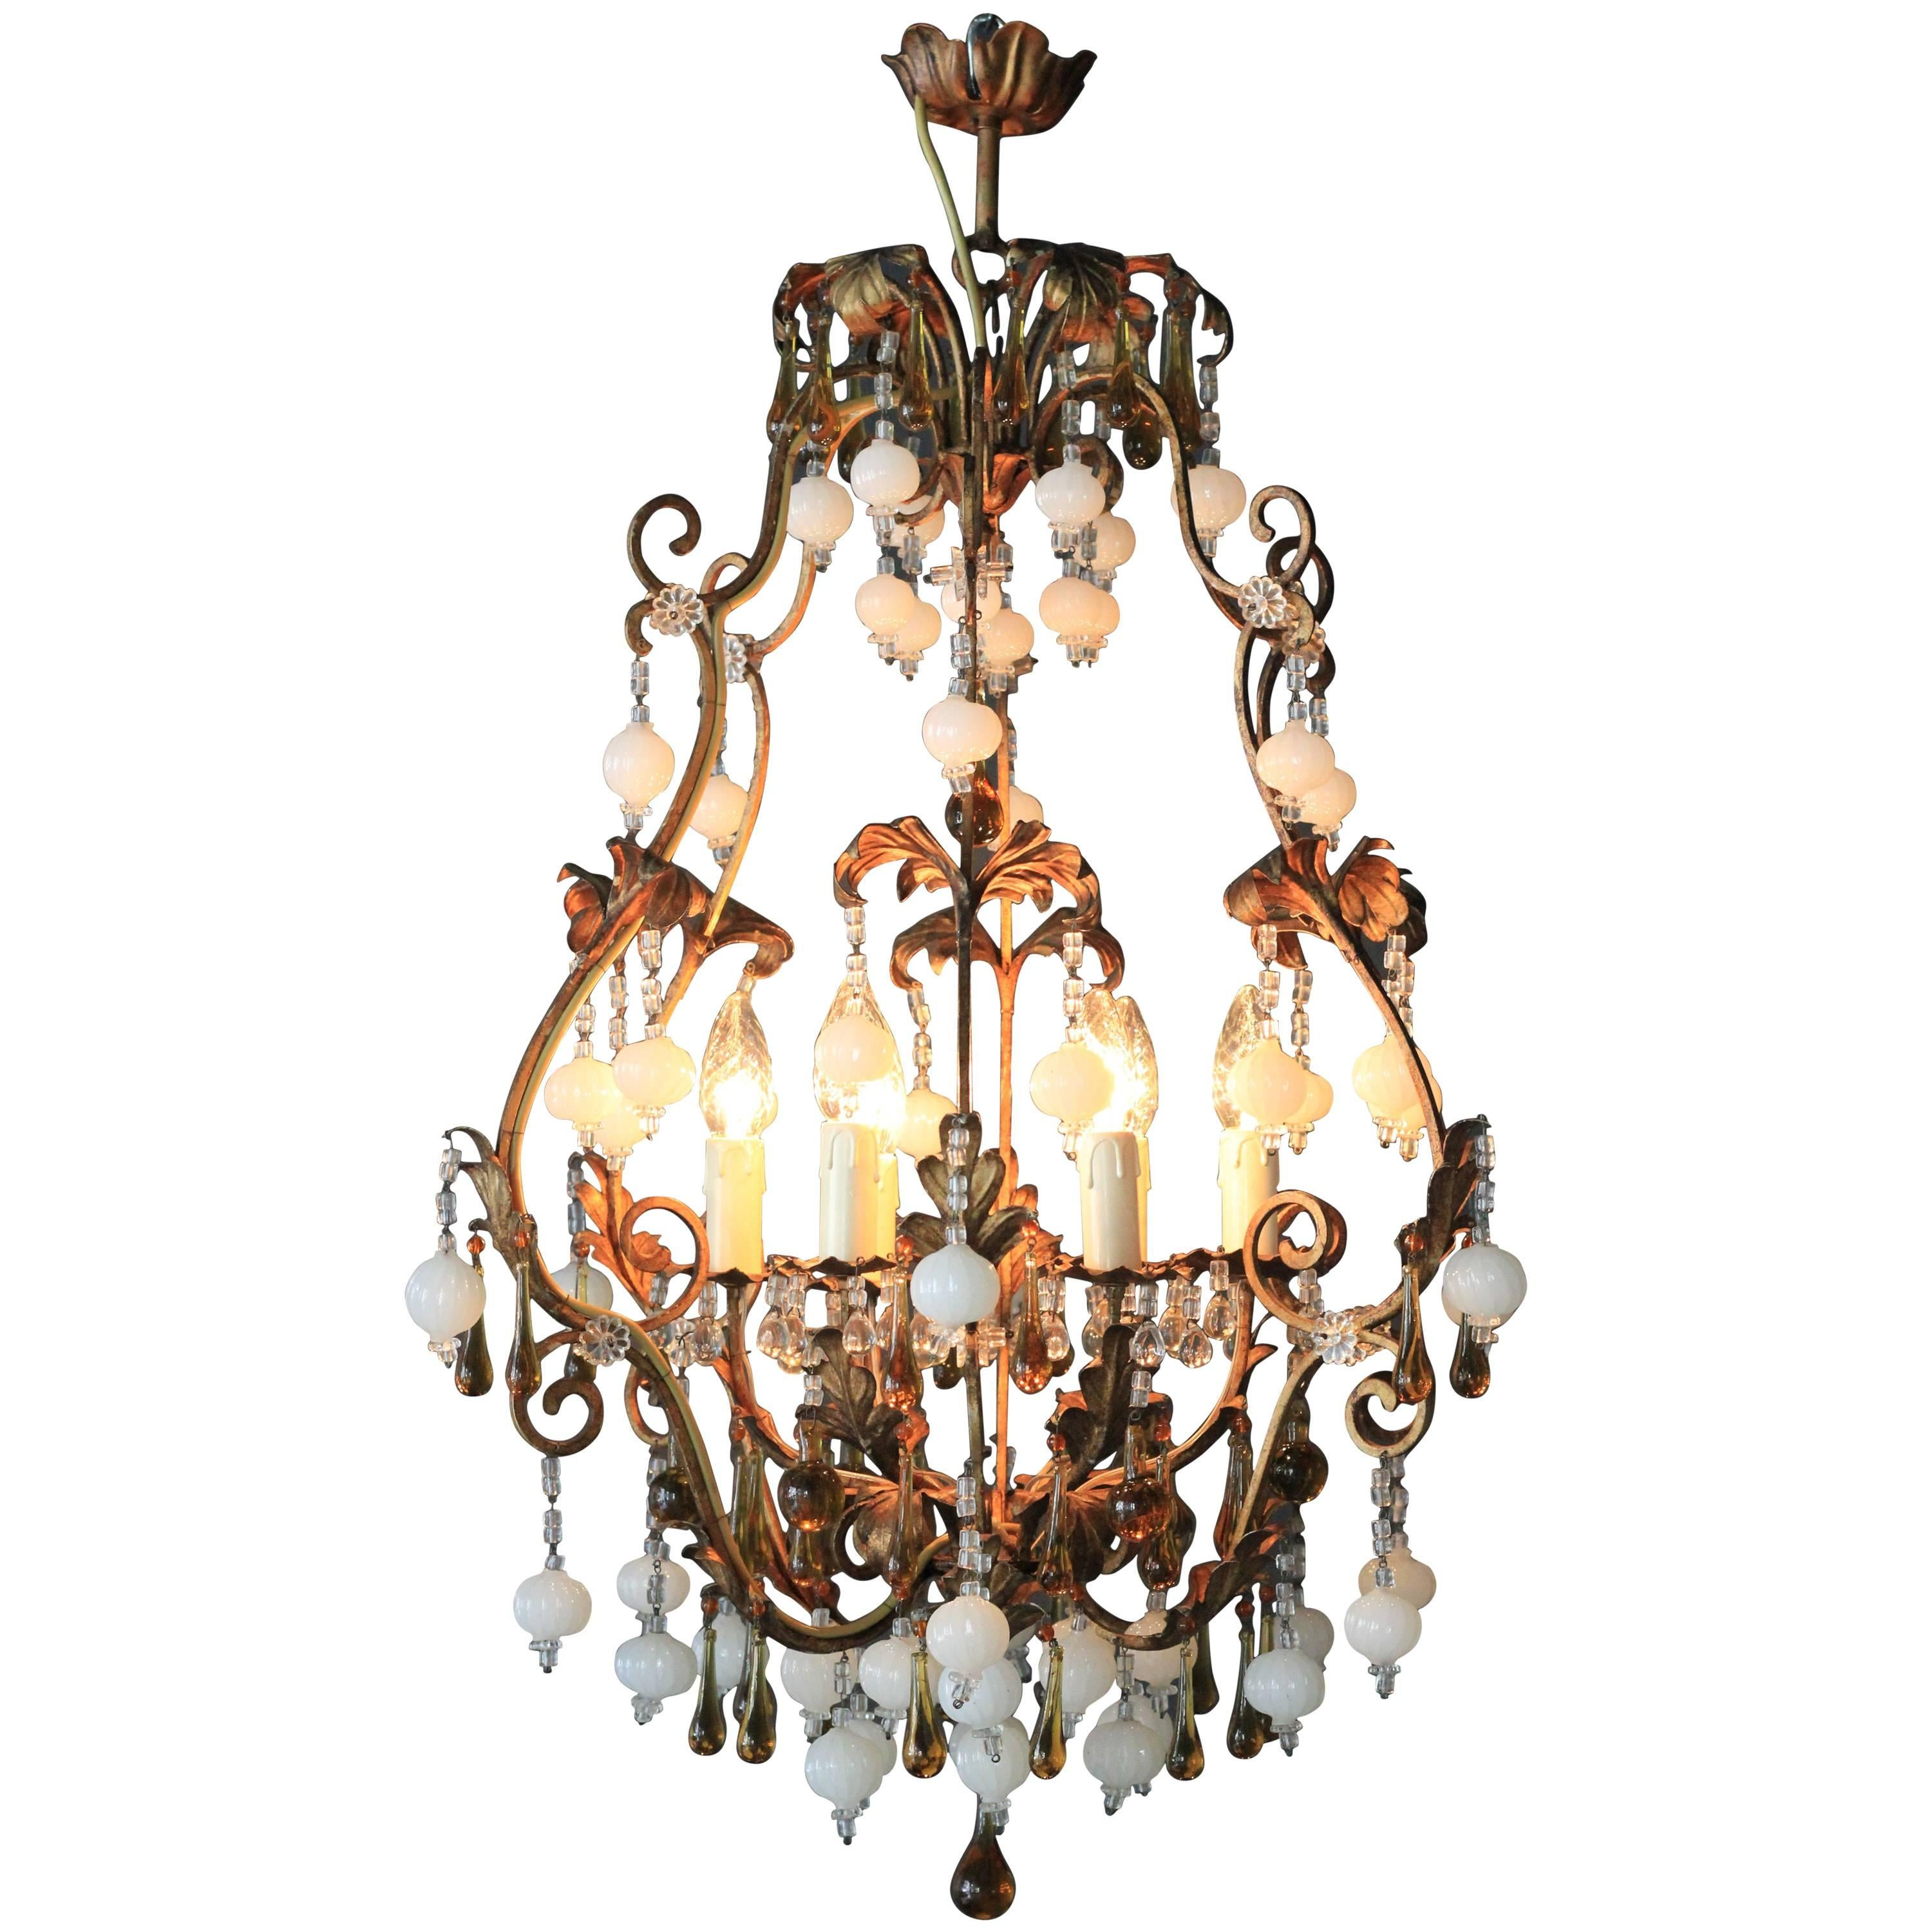 Lustre Cage Special Murano Crystal Chandelier White And Brown Colorful Amber Lustré Cage